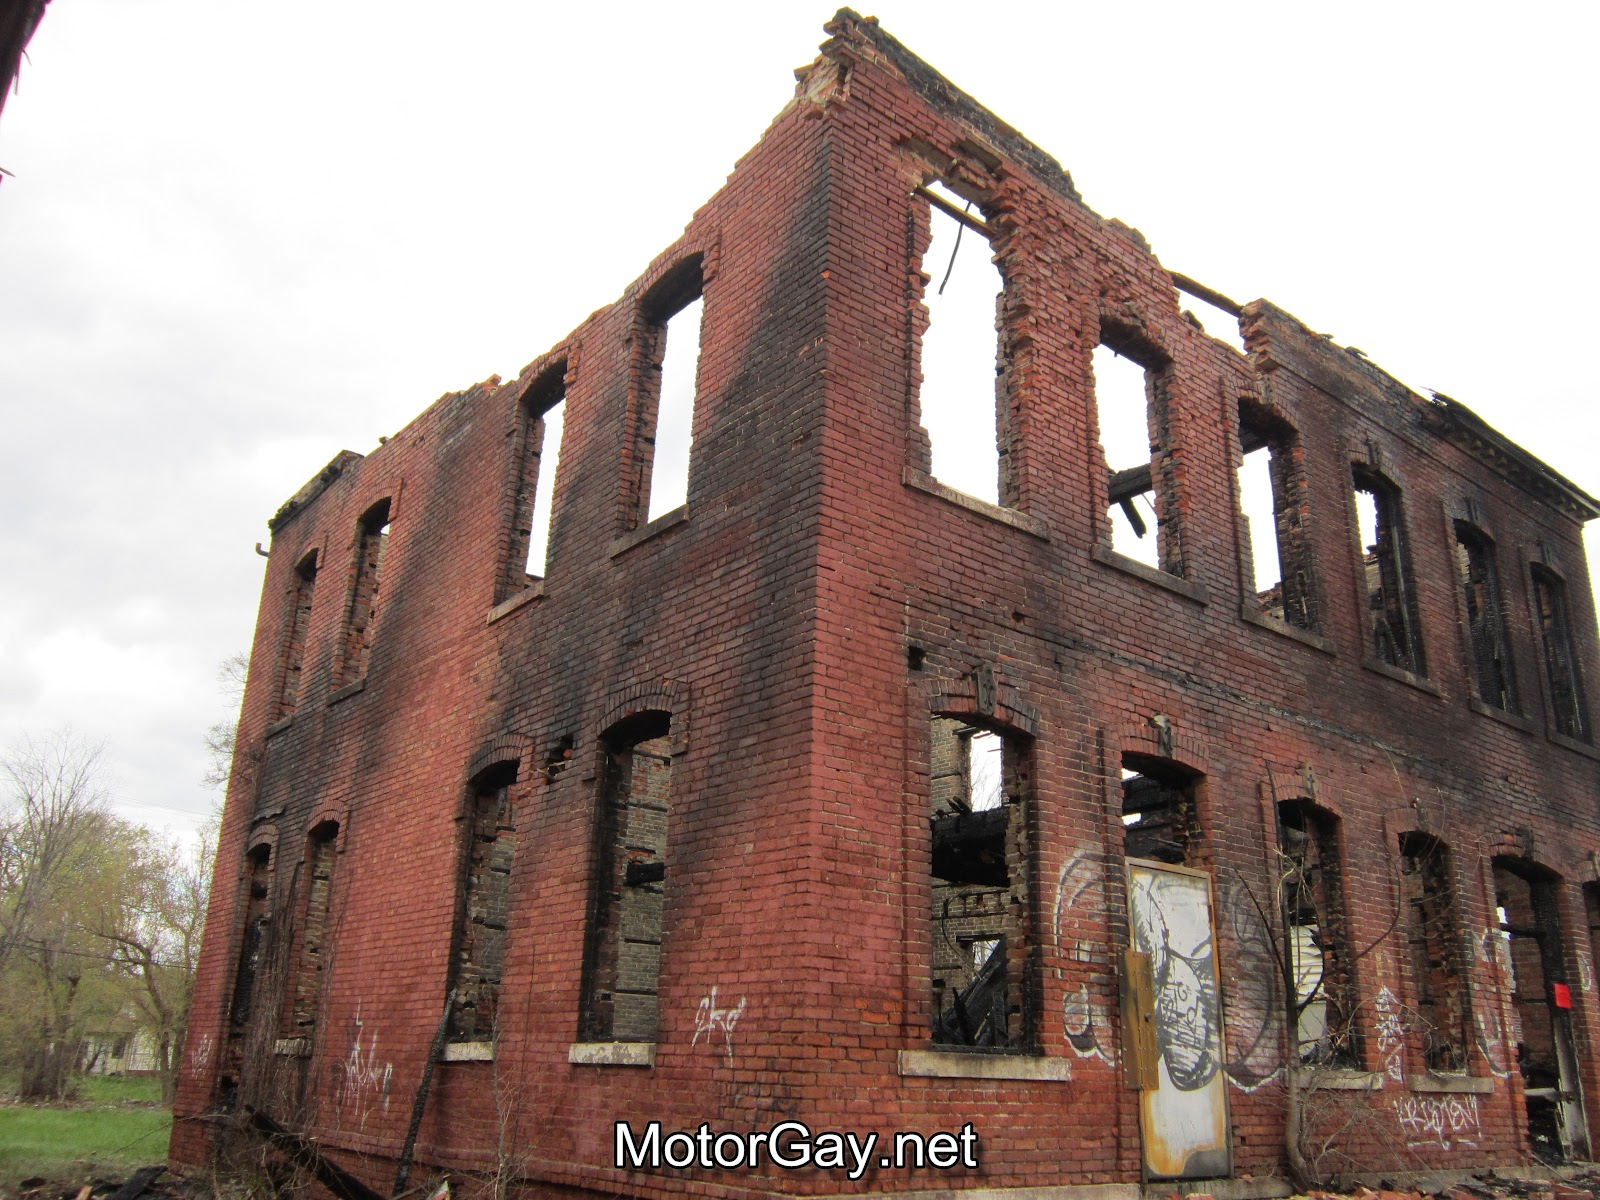 MotorGay- A Gay Detroit Blog: Historic loss on Fort St, Detroit